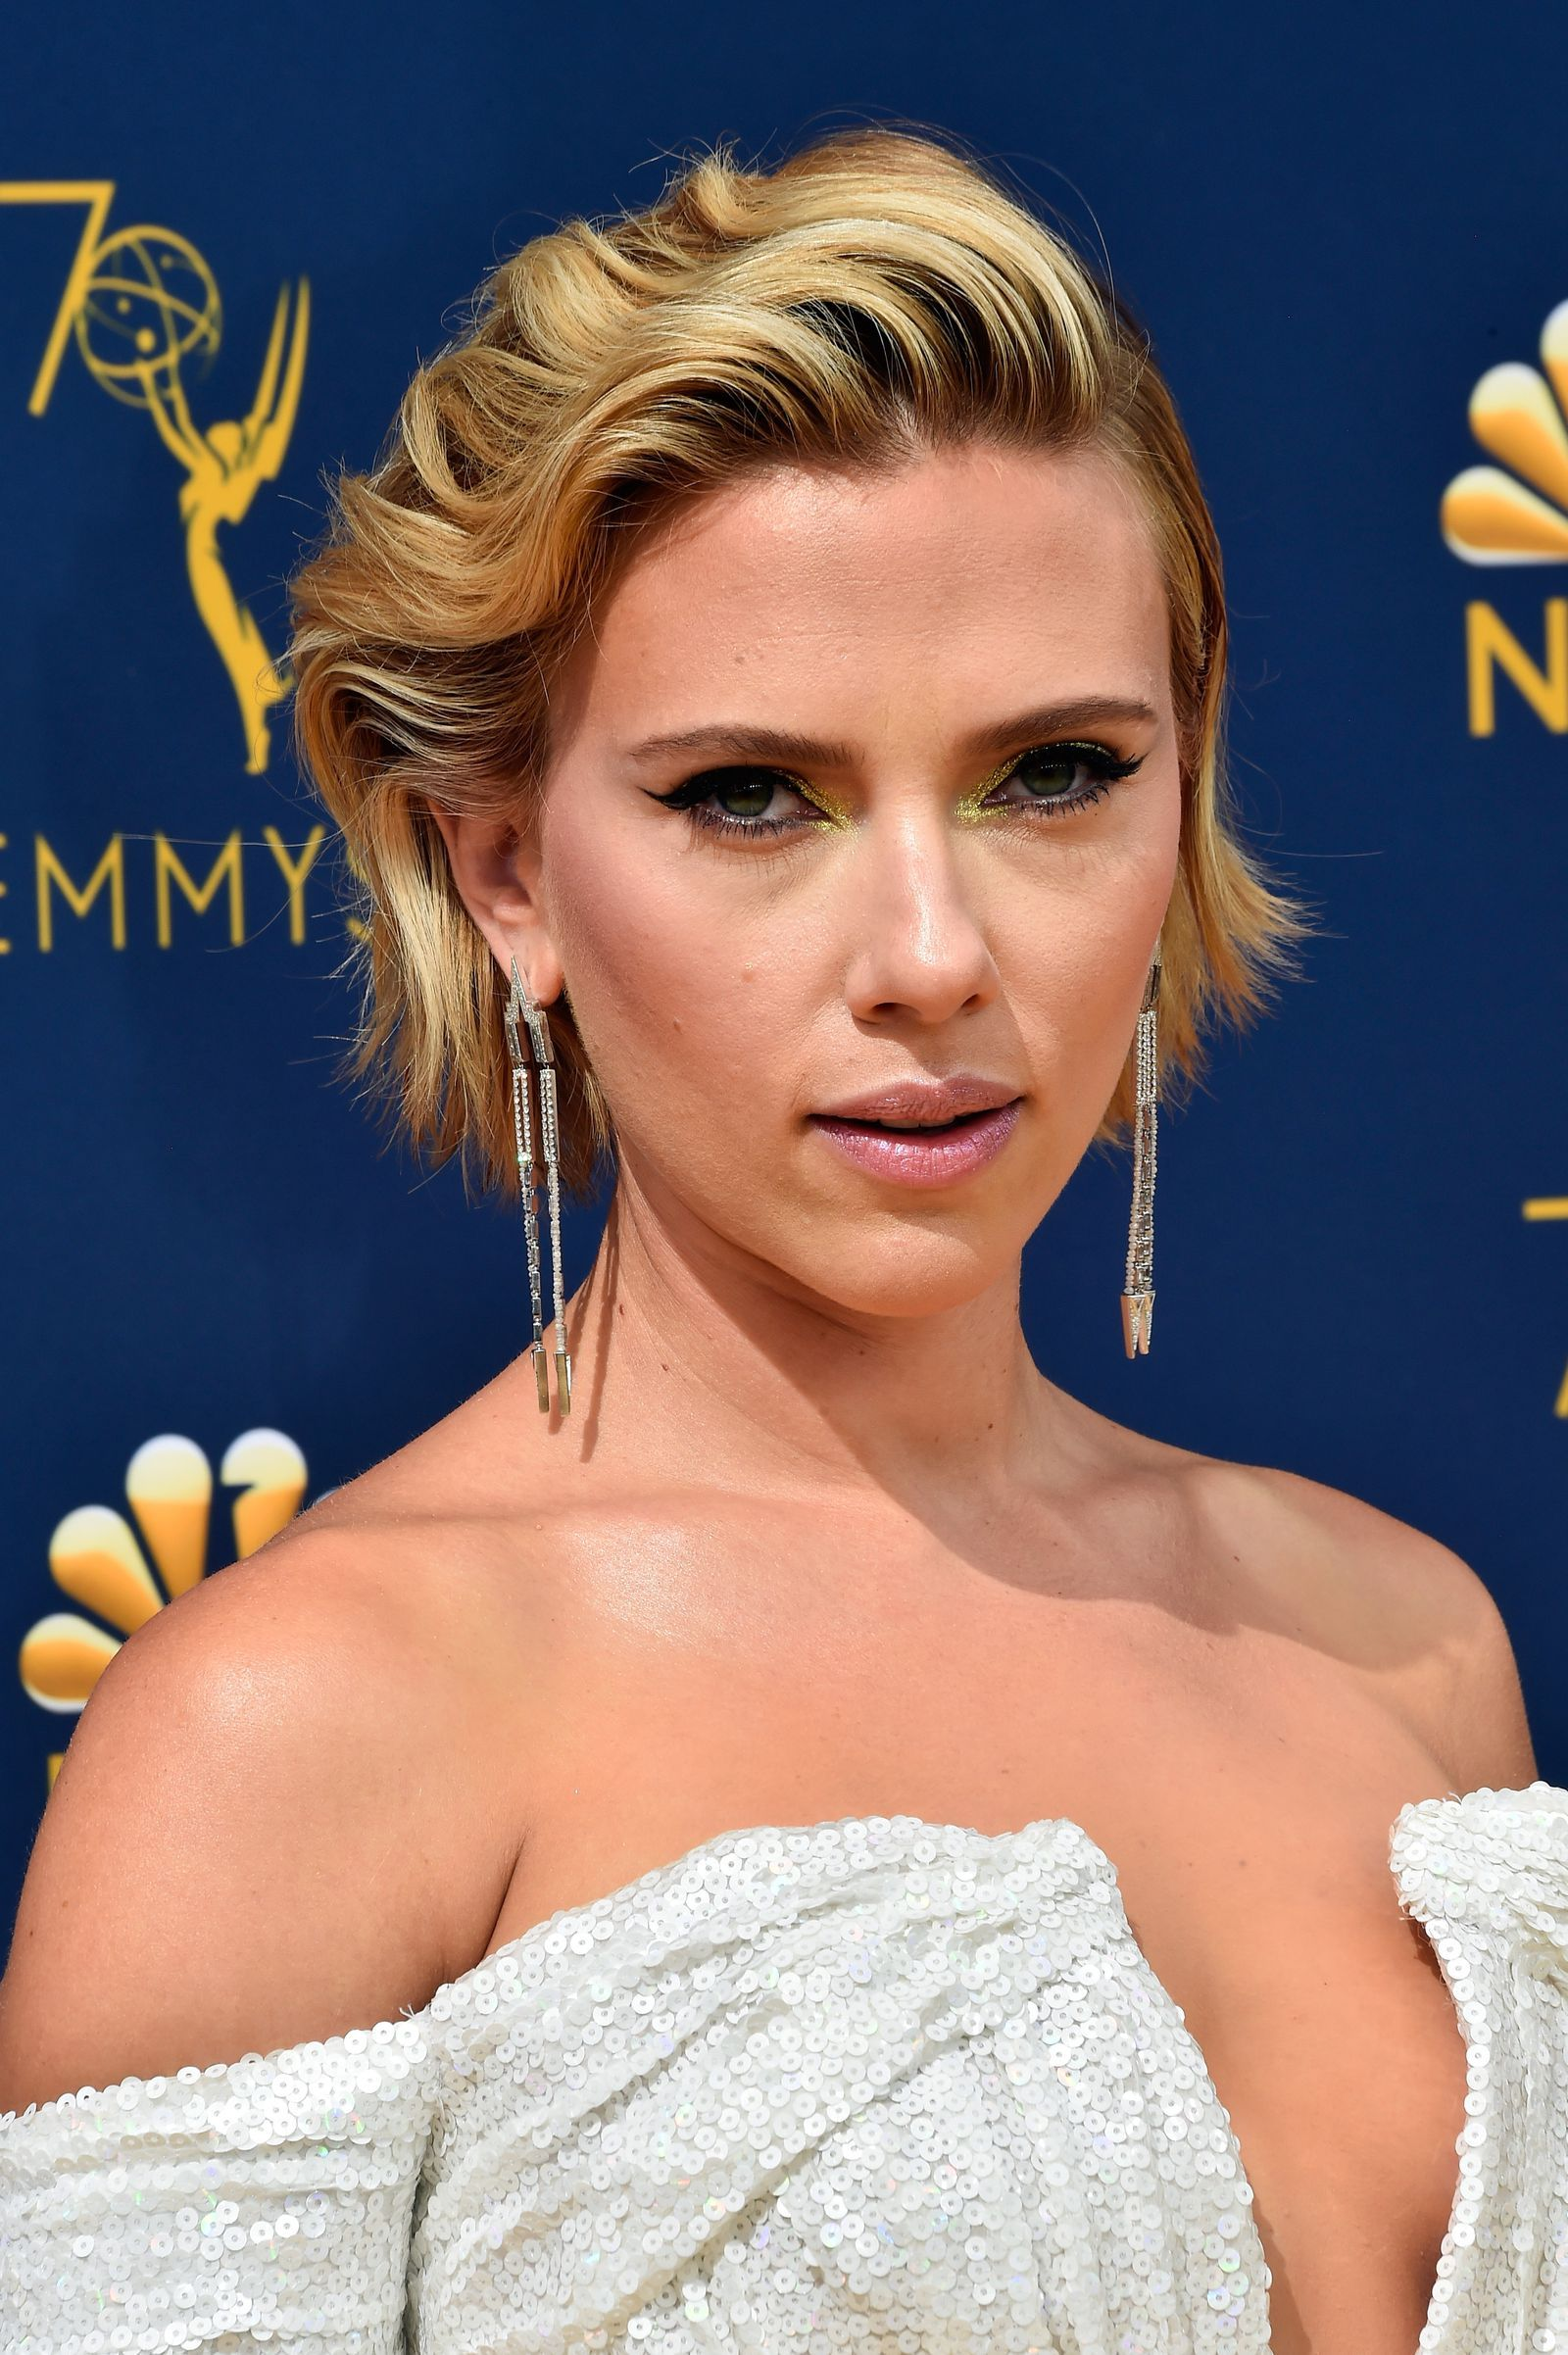 The Best Hair and Makeup at the 2018 Emmy Awards (With